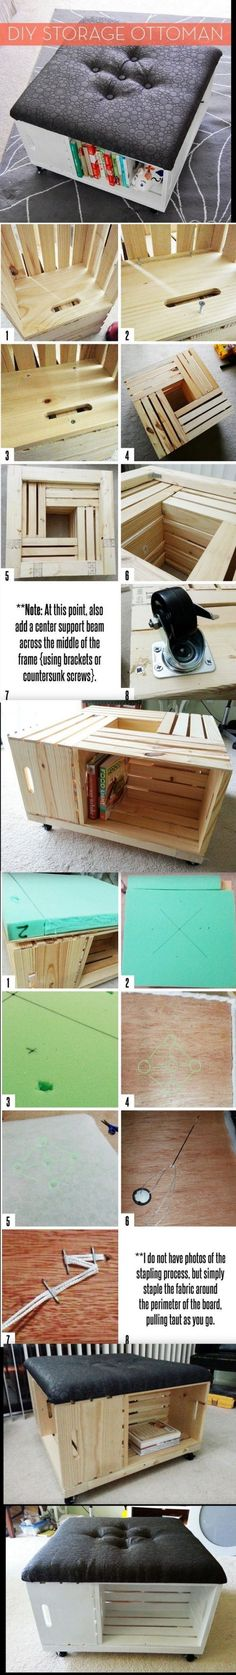 DIY Storage Ottoman with Wheels by ForgetAboutMe